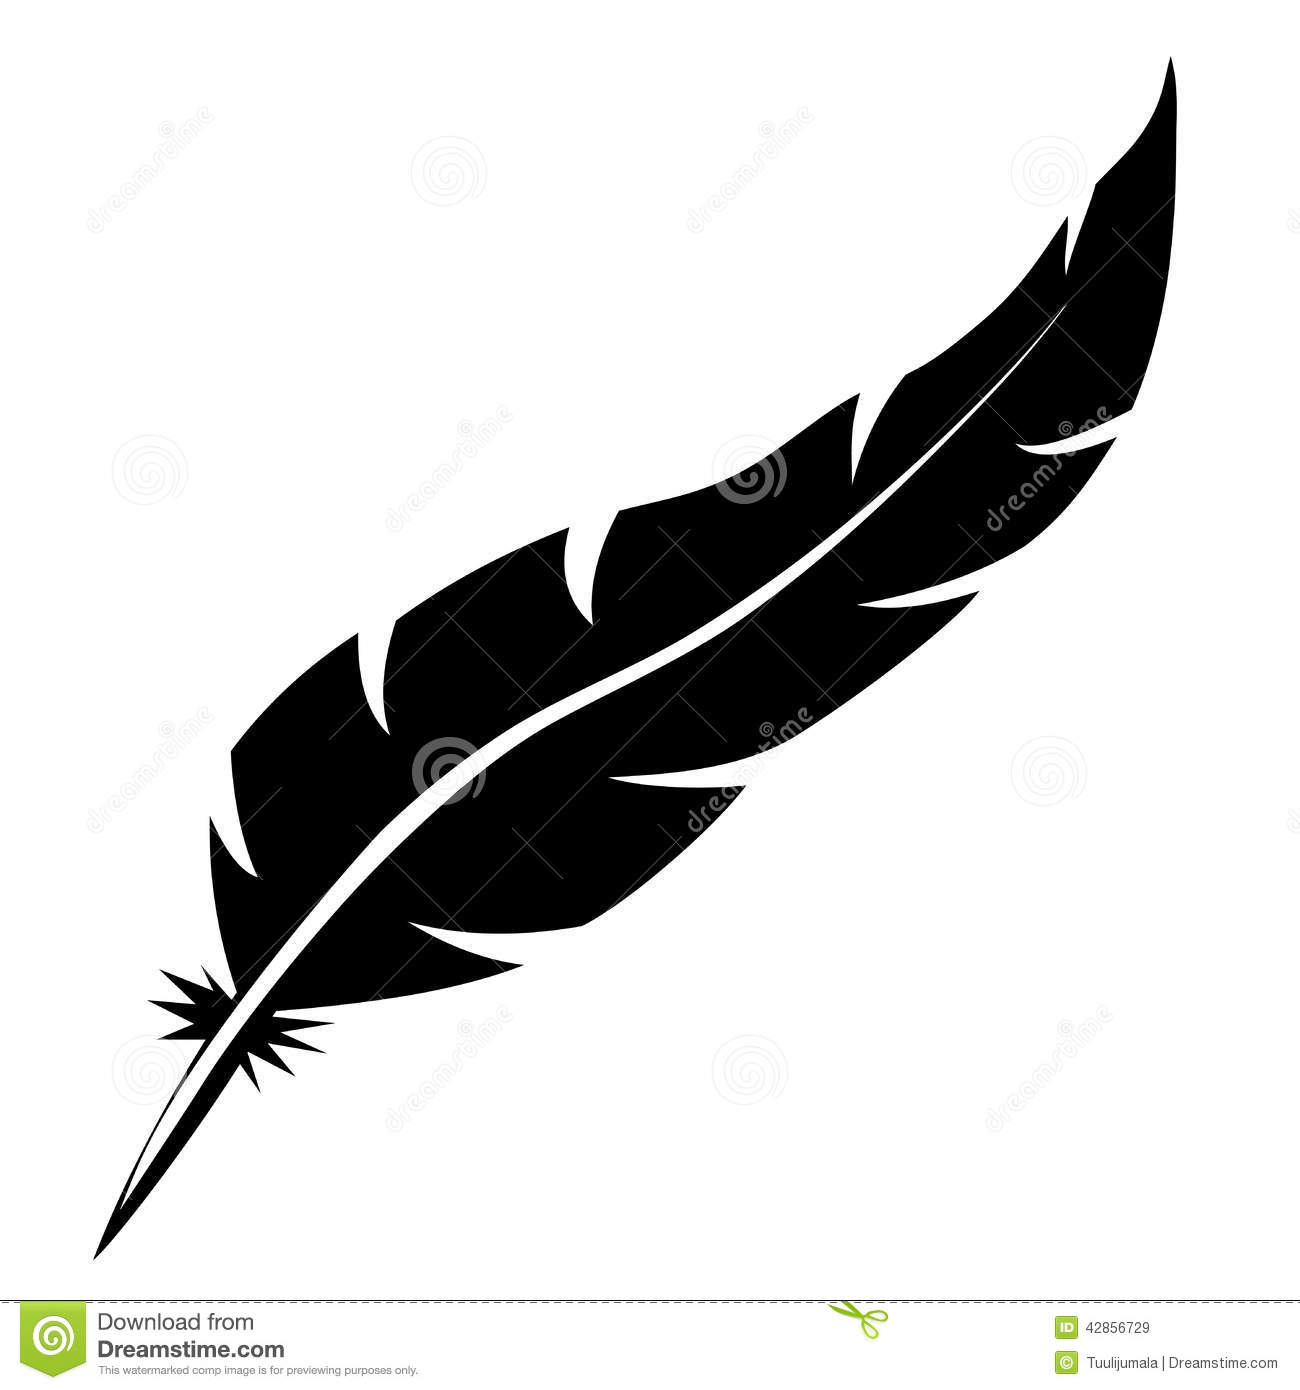 Feather turning into birds clipart vector royalty free library Feather Bird Clipart - Clipart Kid vector royalty free library